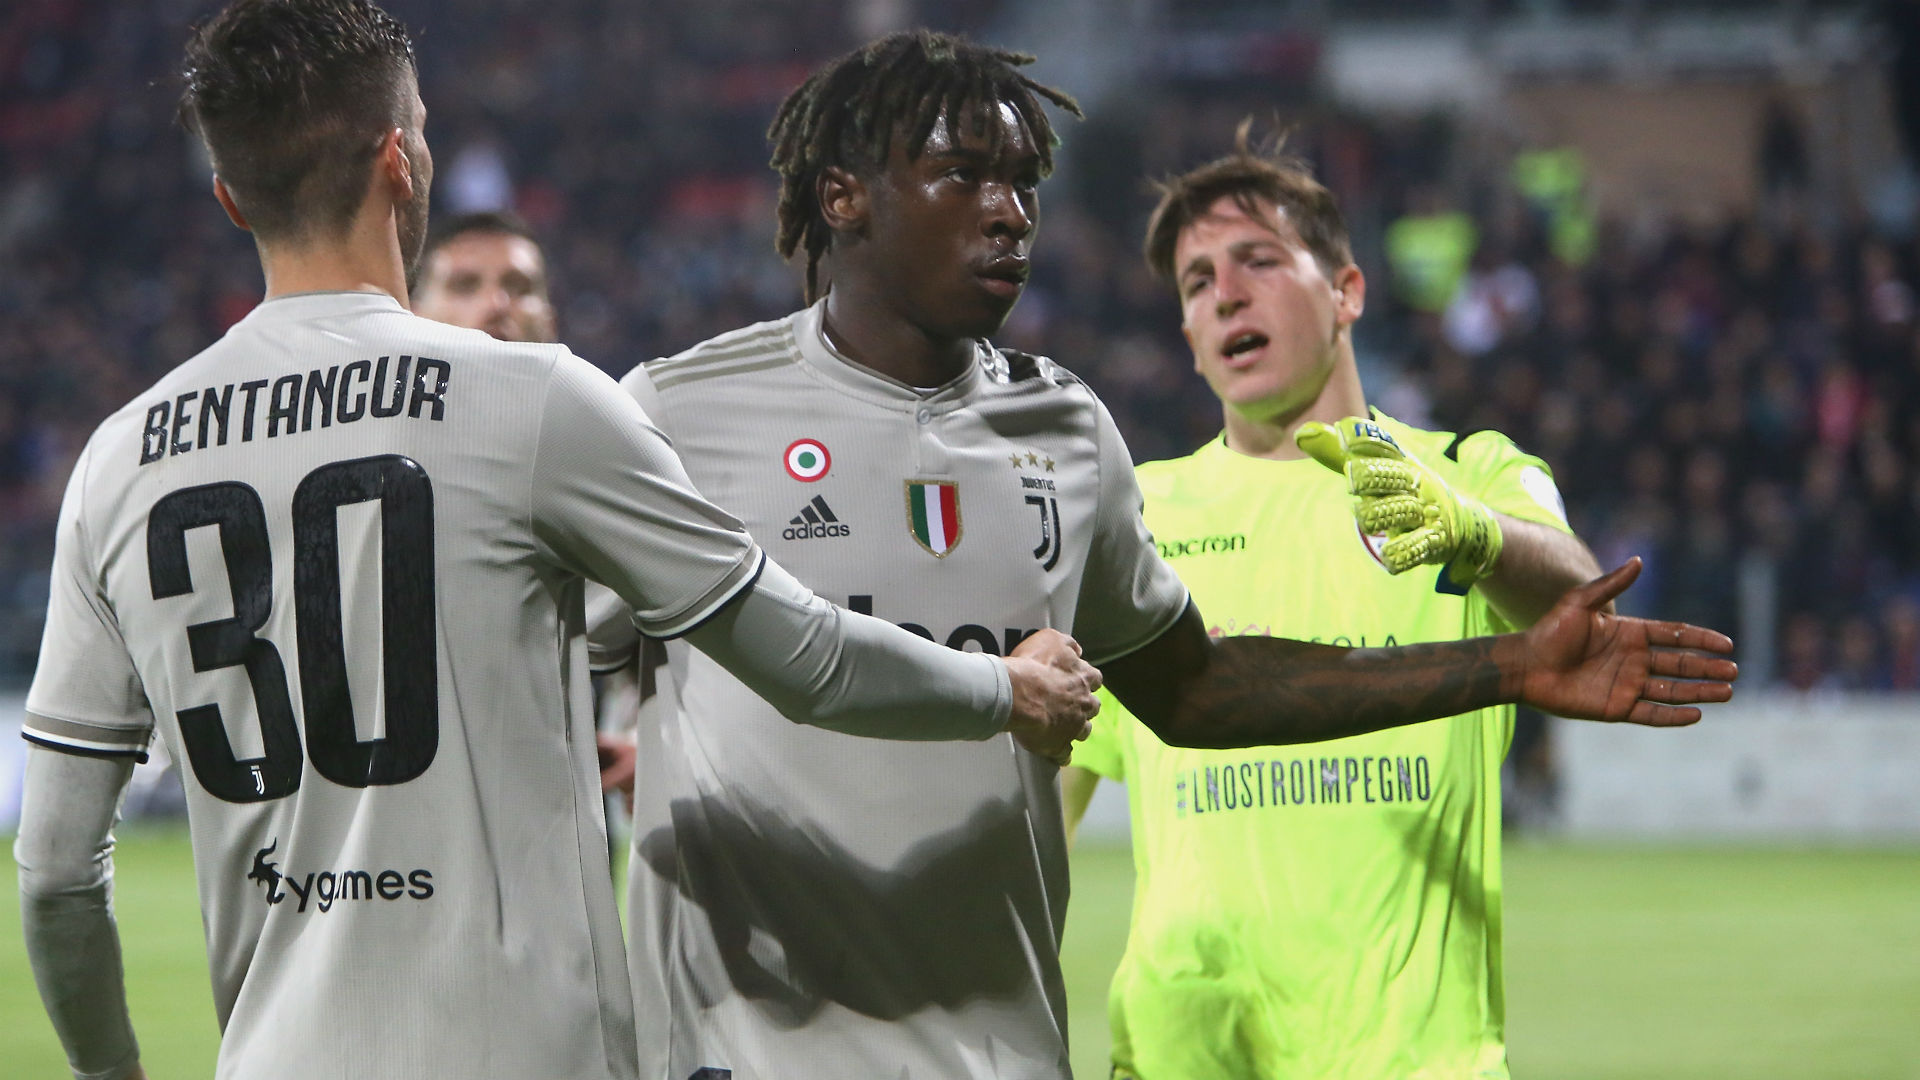 Micho And Klate Support Moise Kean After Racial Controversy In Italy Goal Com